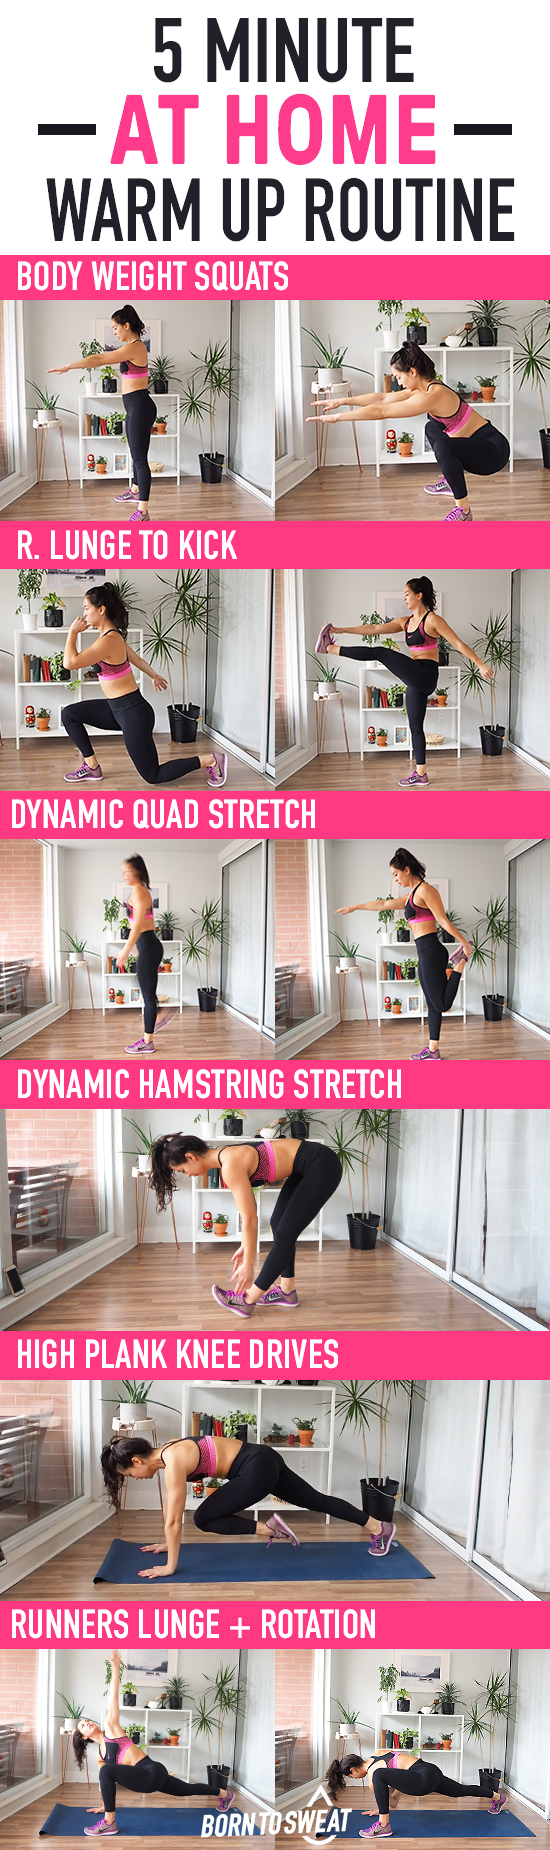 5 minute at home warm up routine! No equipment needed for this awesome dynamic warm up. Get your entire body moving and the blood flowing to ensure you don't injure or pull anything before your workout